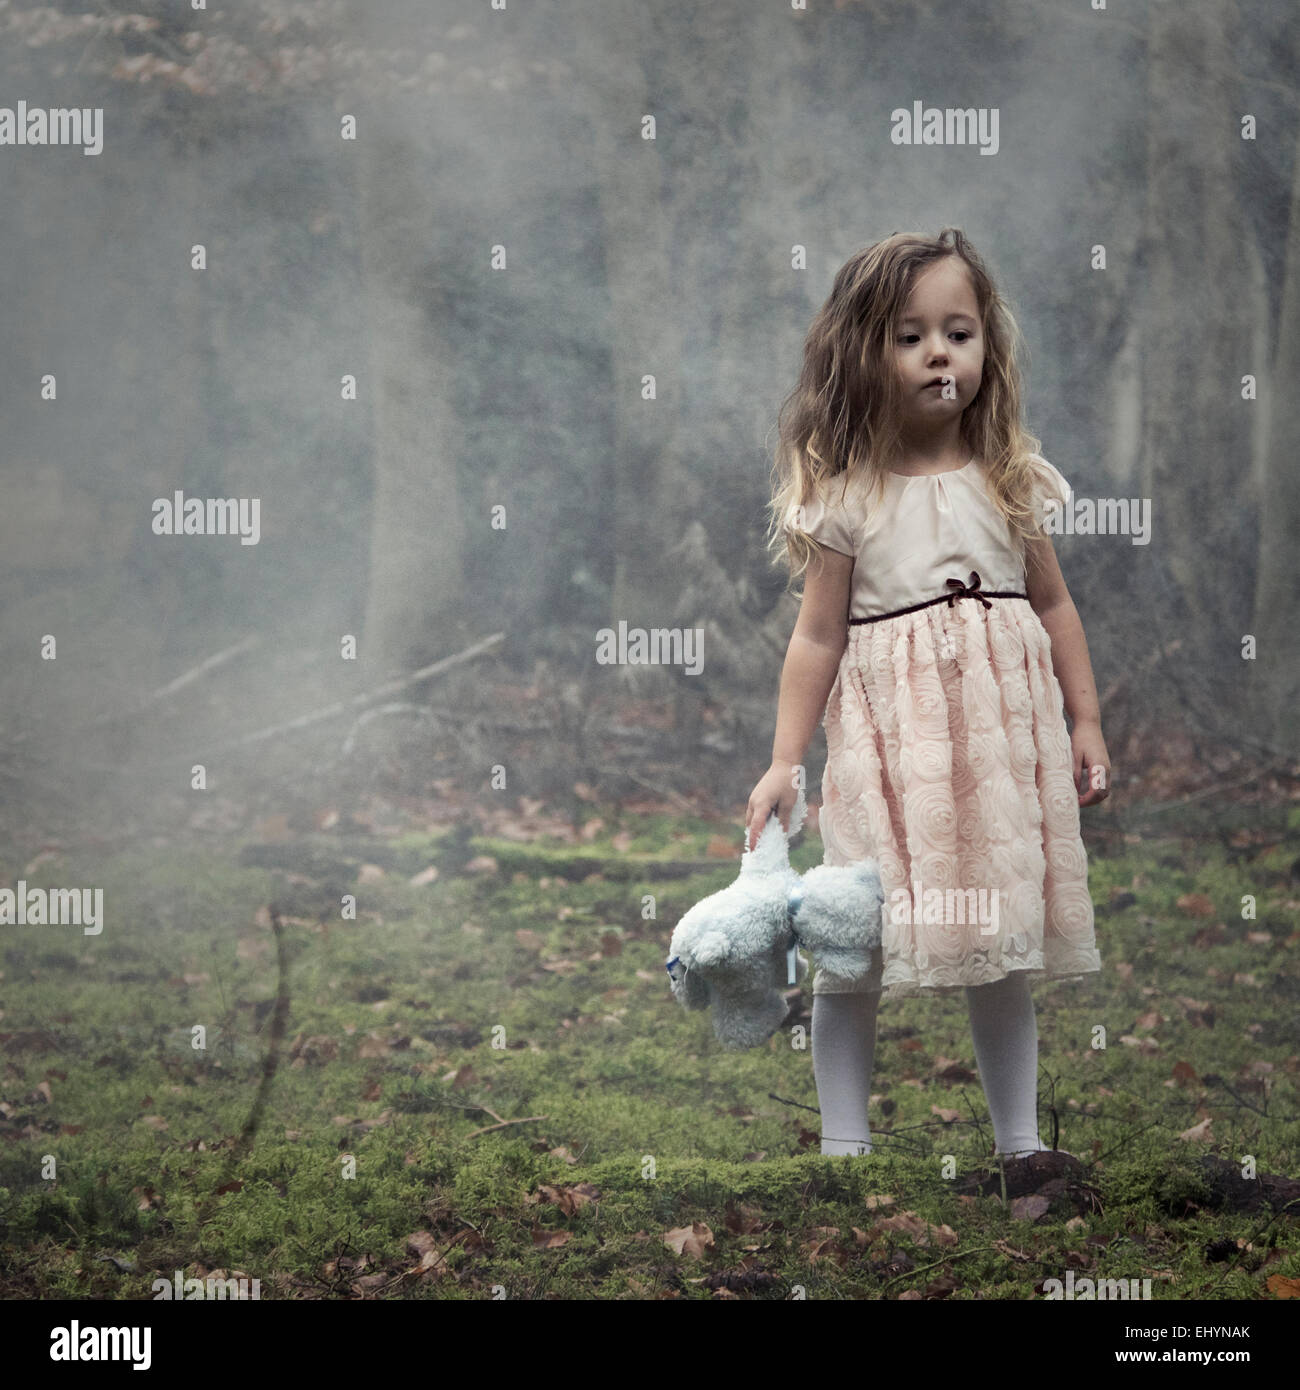 girl standing in the woods holding a teddy bear stock